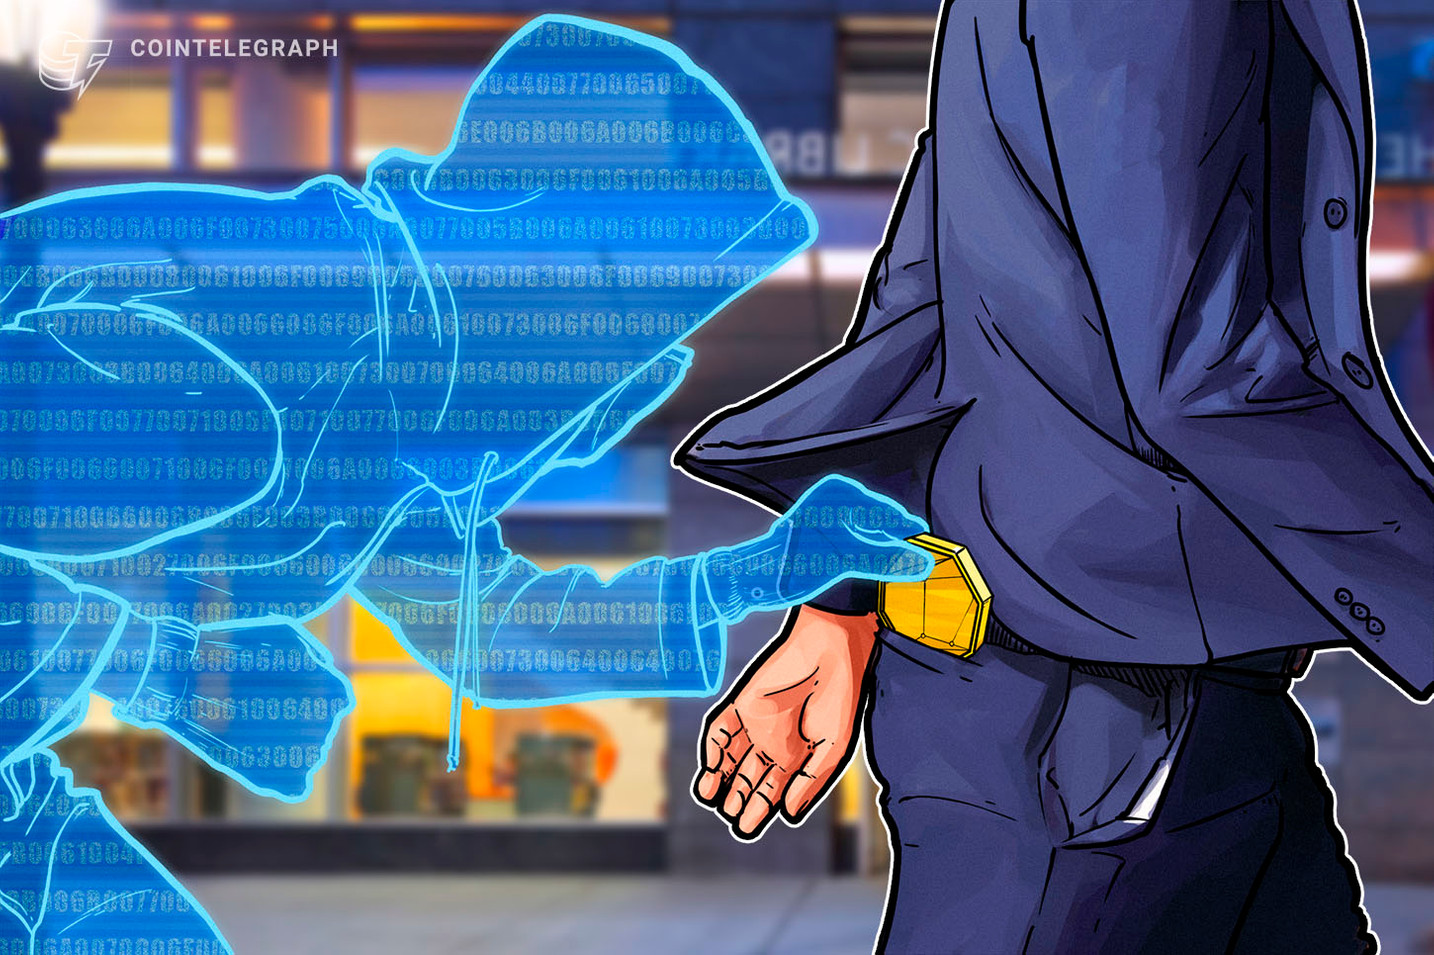 'Blockchain Bandit' Has Stolen 45,000 ETH by Guessing Weak Private Keys, Report Claims